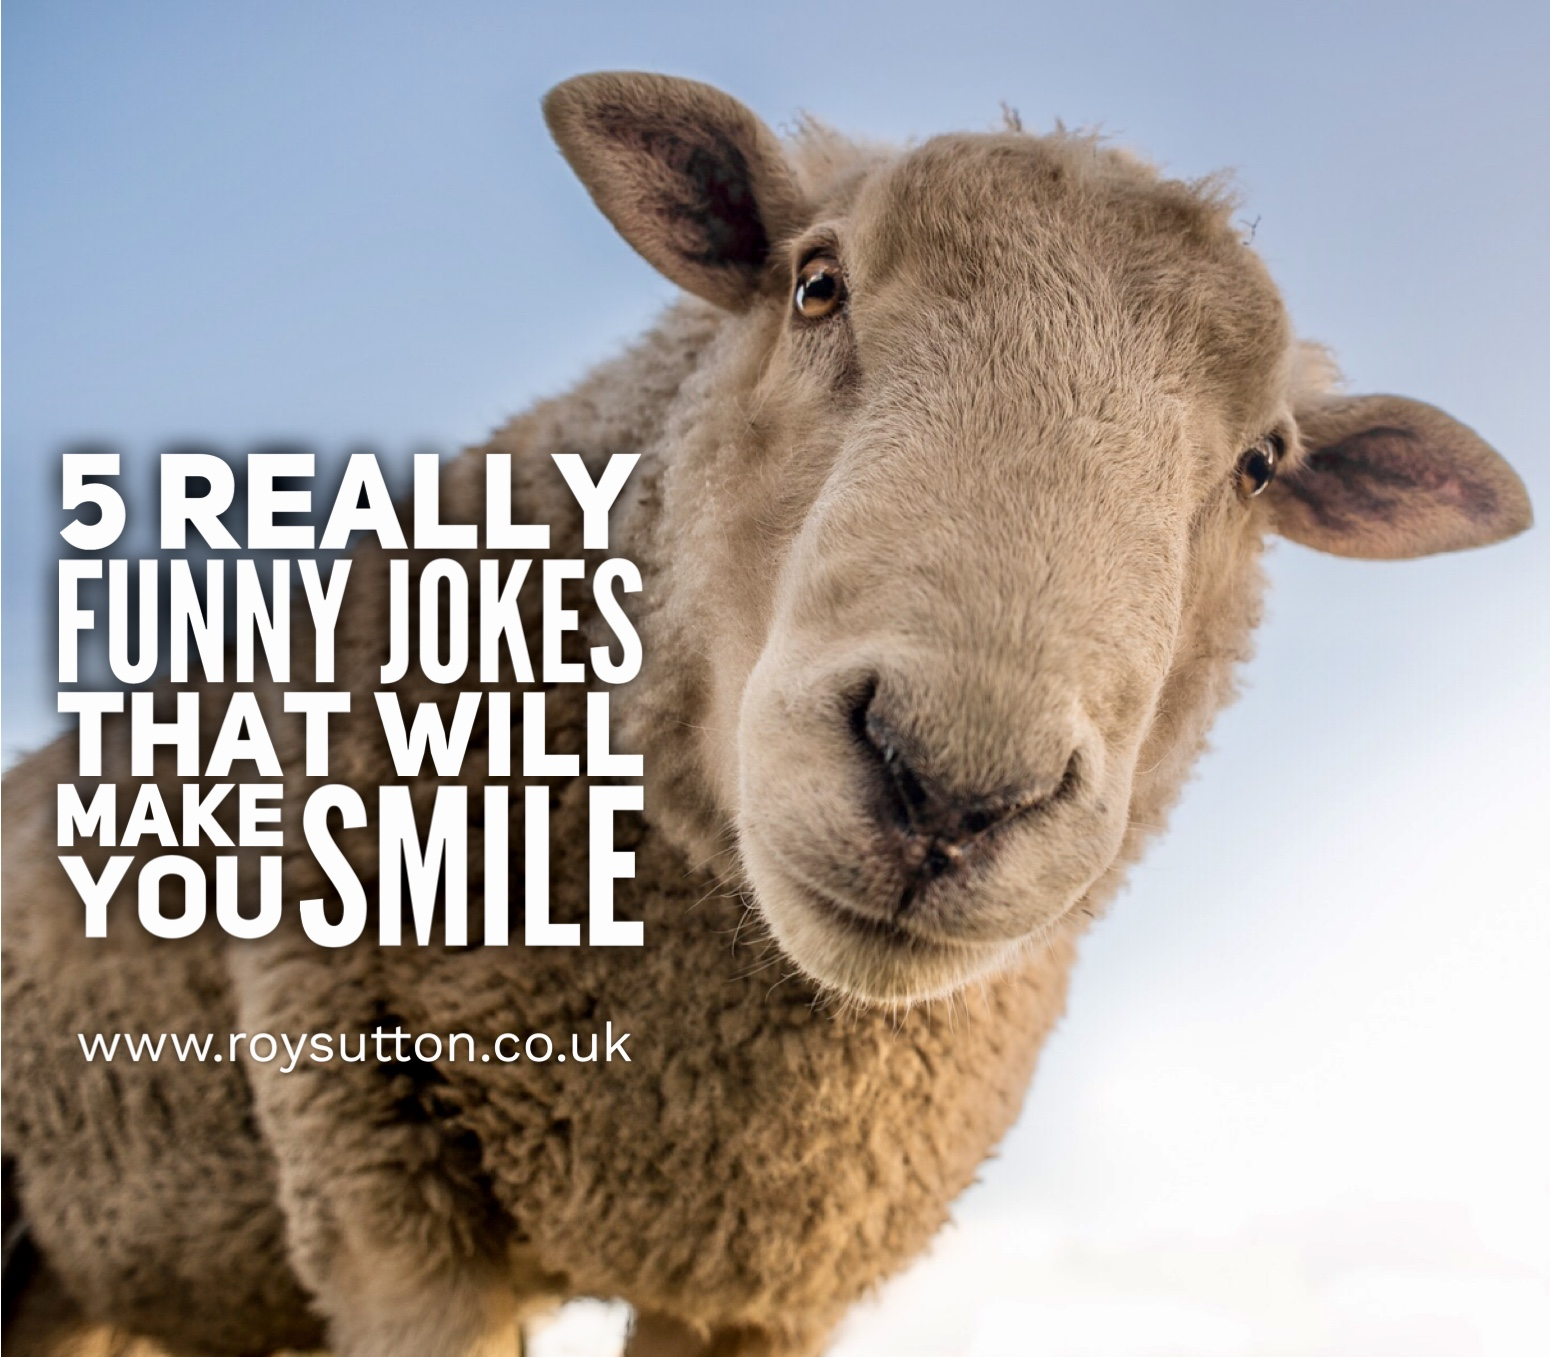 Humor Inspirational Quotes: 5 Really Funny Jokes That Will Make You Smile